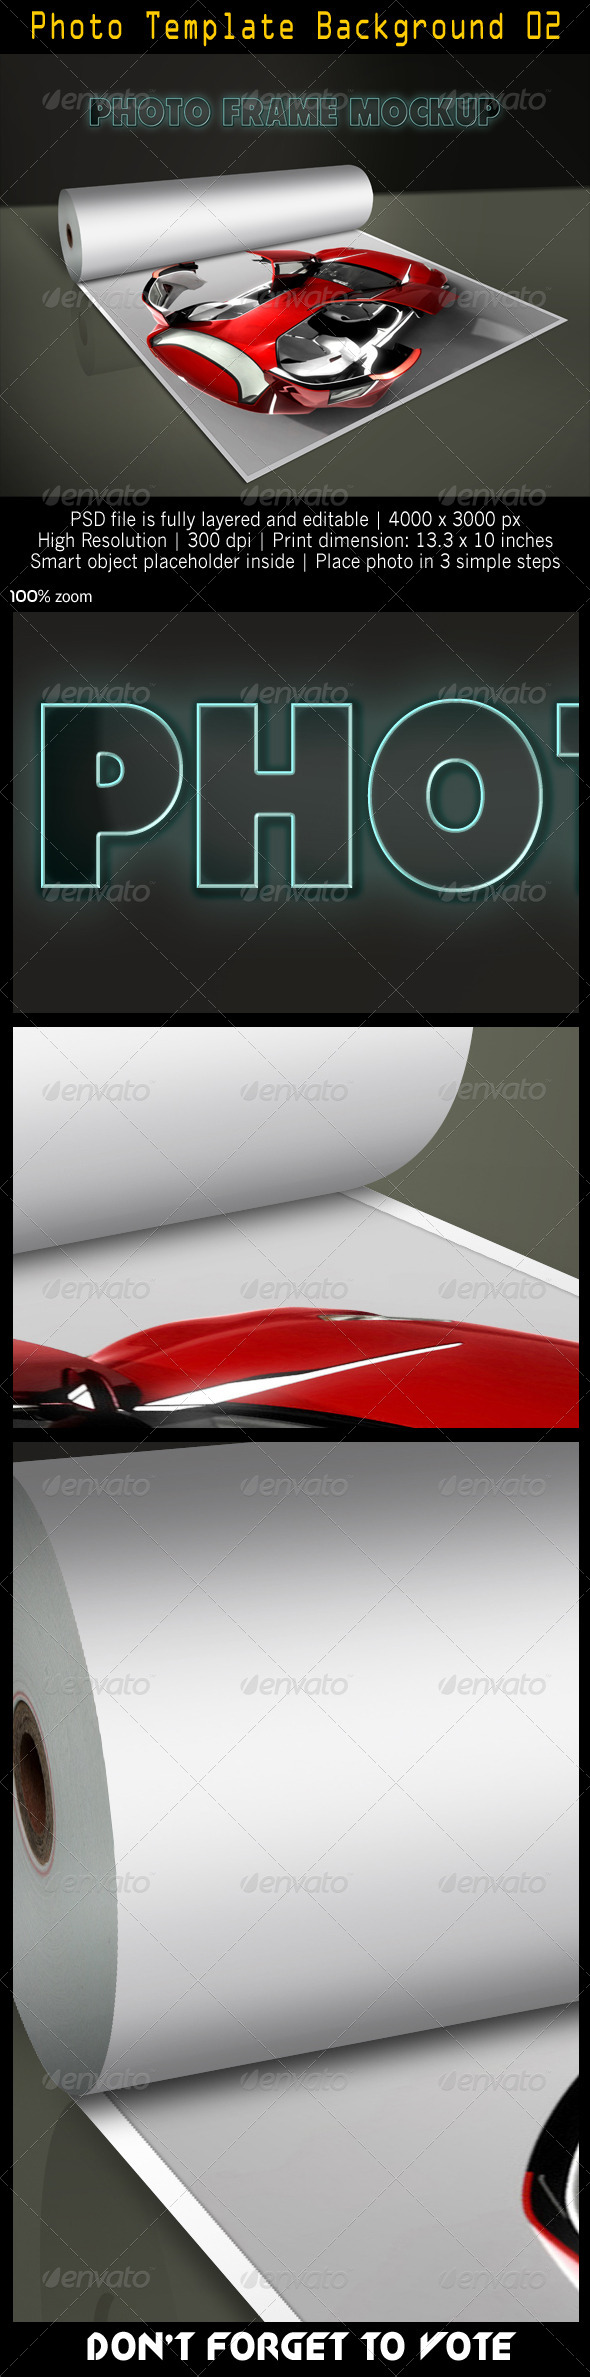 GraphicRiver Photo Template Background 02 4948091